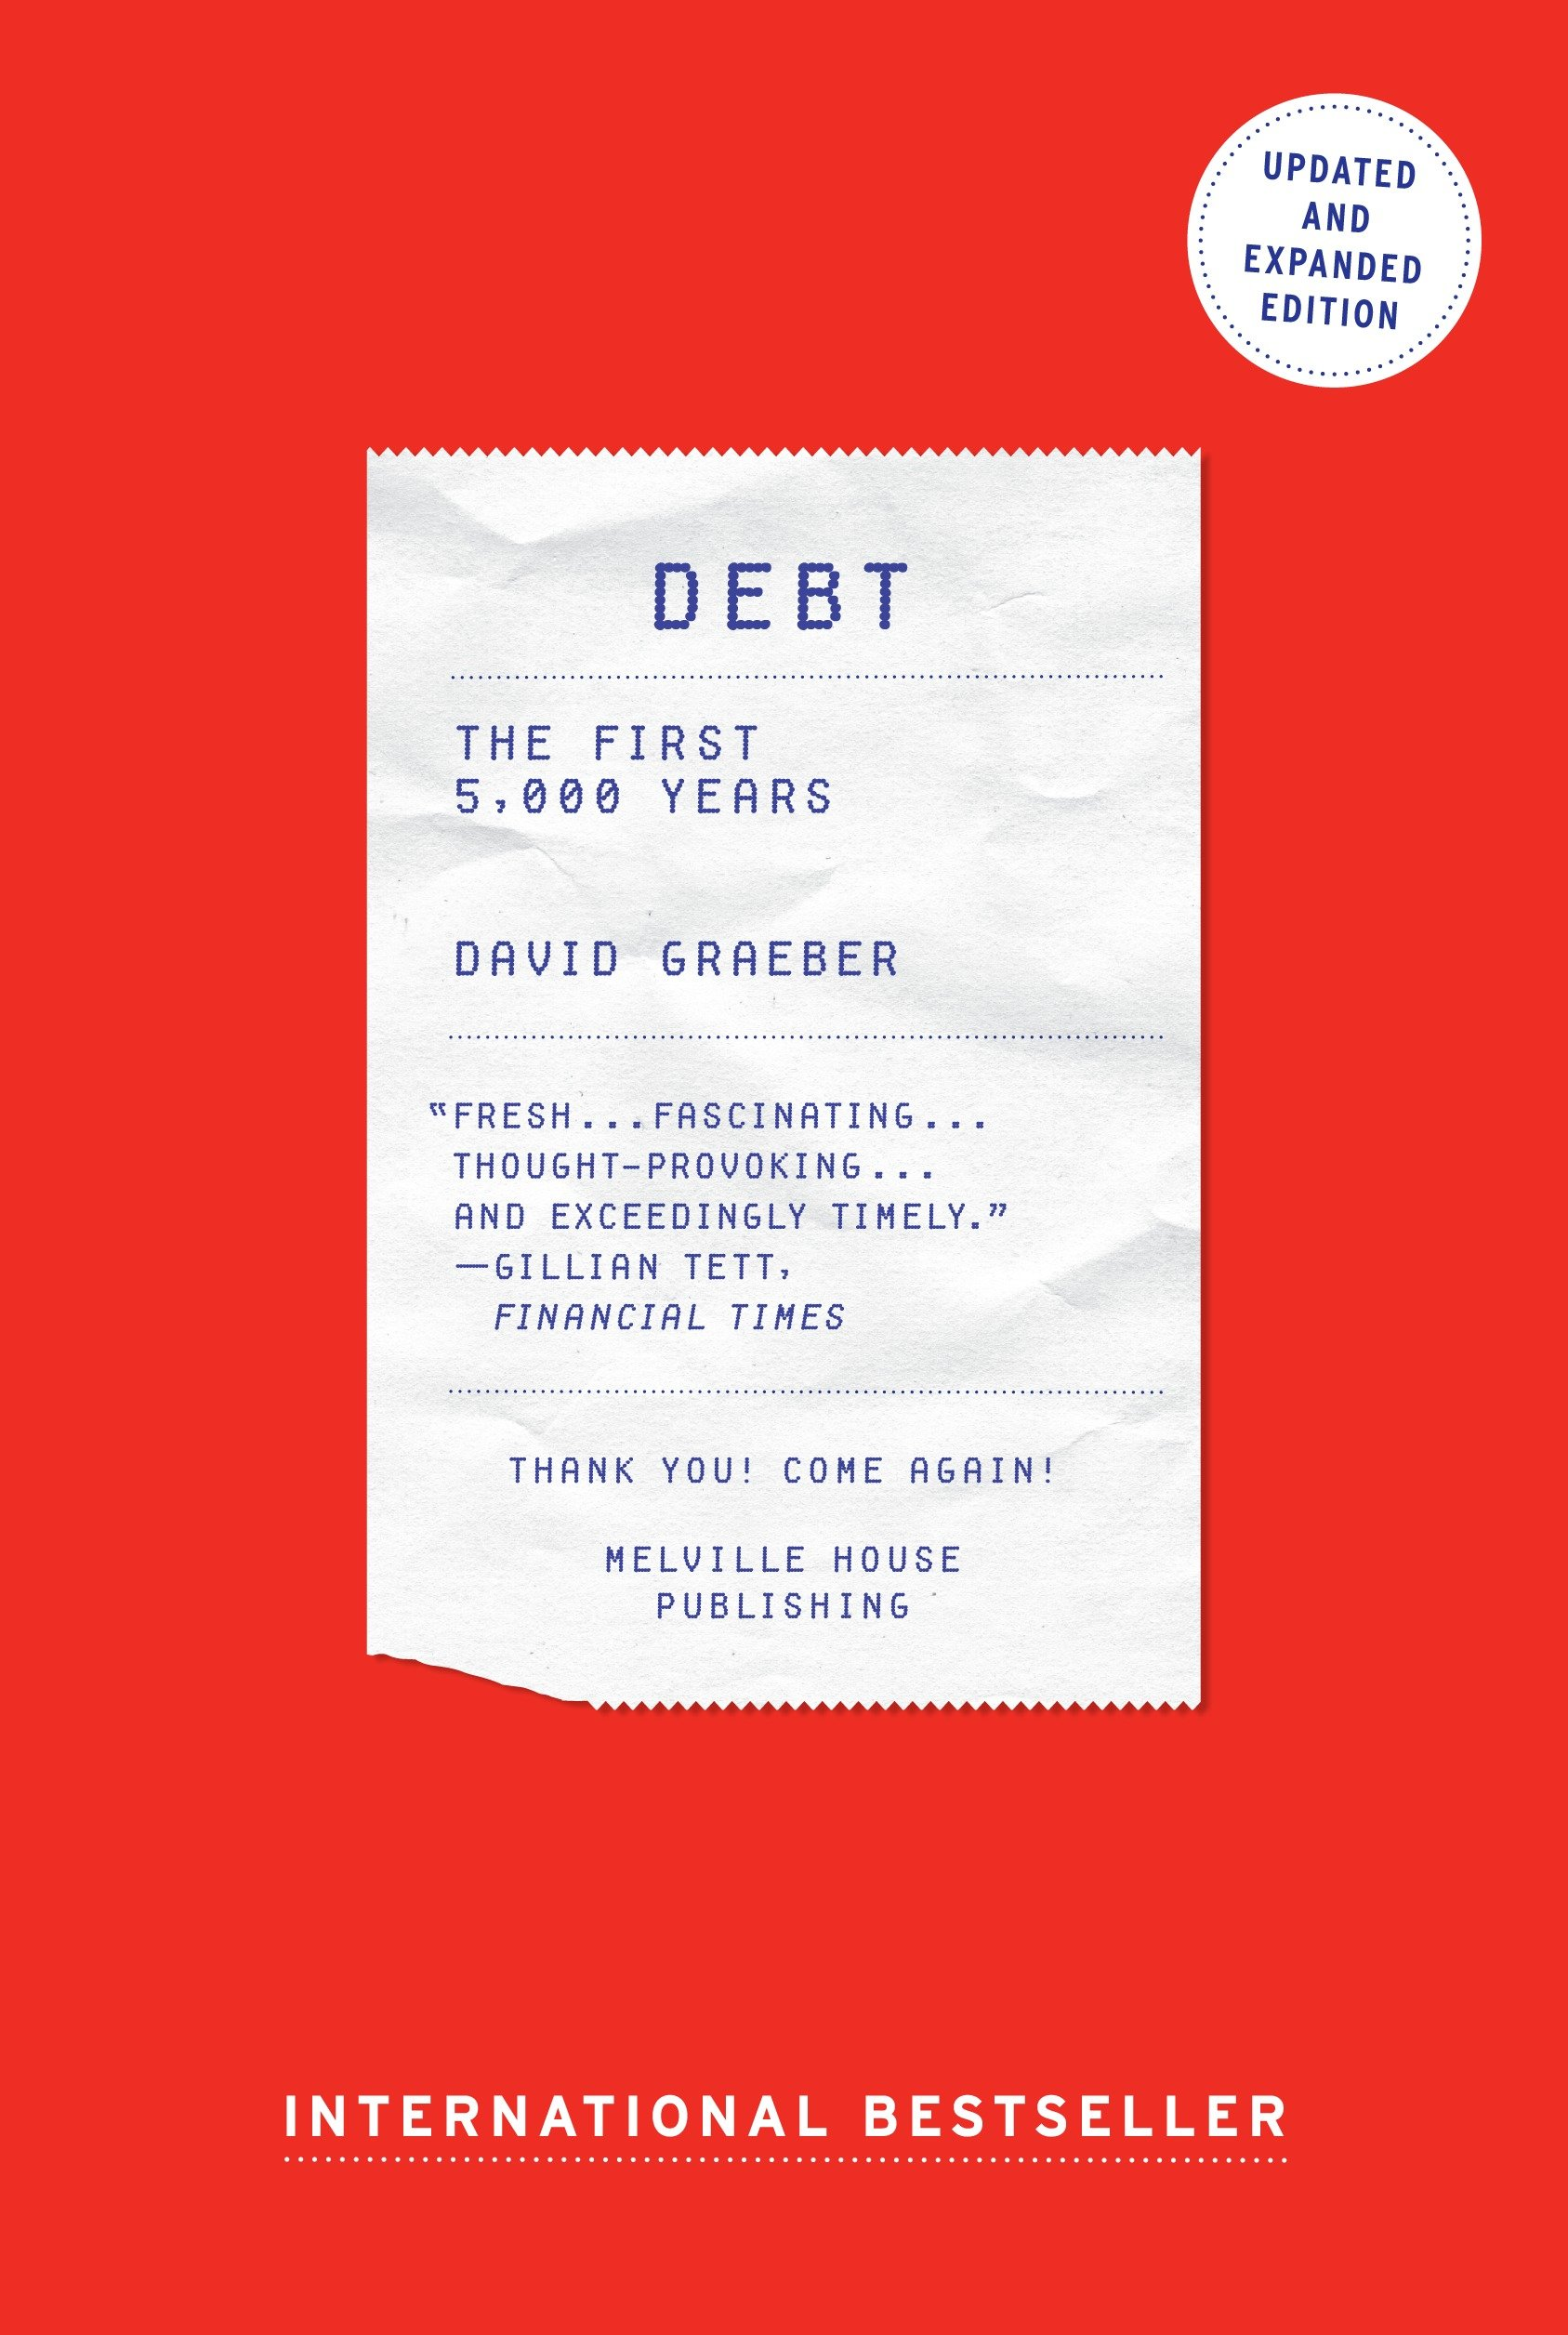 Debt - Updated and Expanded